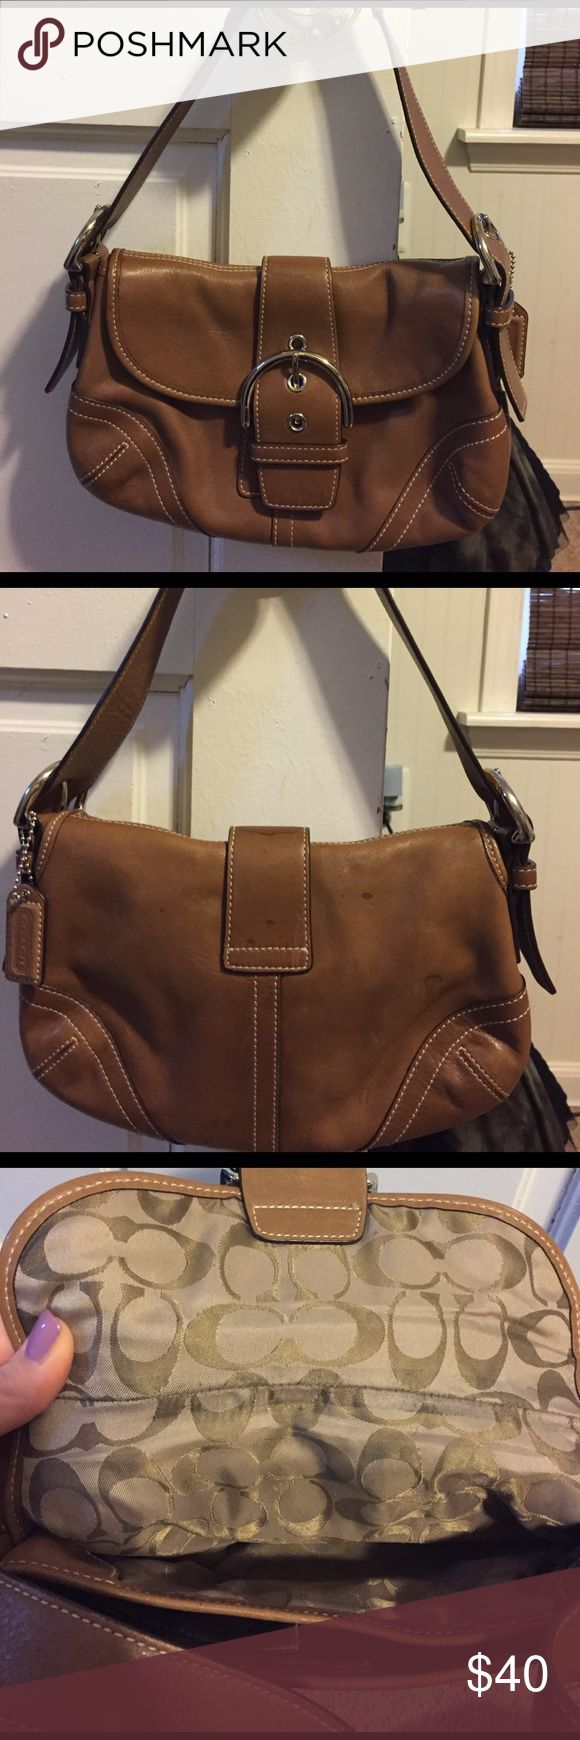 Authentic Coach light brown leather shoulder purse Authentic Coach light brown leather shoulder purse, Coach logo C's fabric lining throughout inside of purse, 2 inner sections with several pockets including one interior side zip pocket. Some small stains on back of purse and small at top of bag but rest is in great condition! Send me an offer today! 😊👍🏻 BONUS Coach travel bag included with purchase! Coach Bags Shoulder Bags